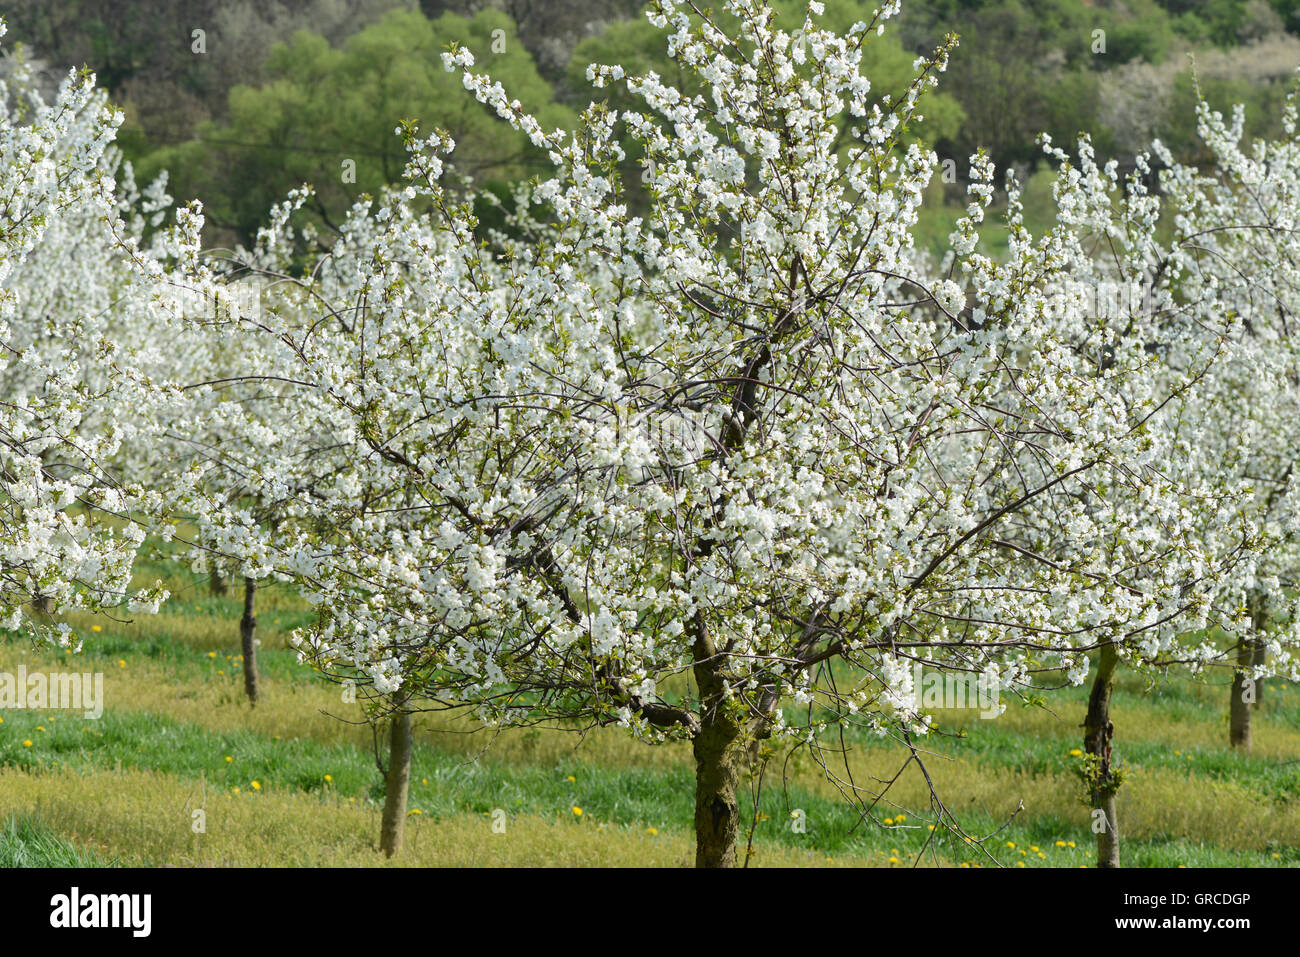 Flowering Fruit Trees Stock Photo 117673382 Alamy